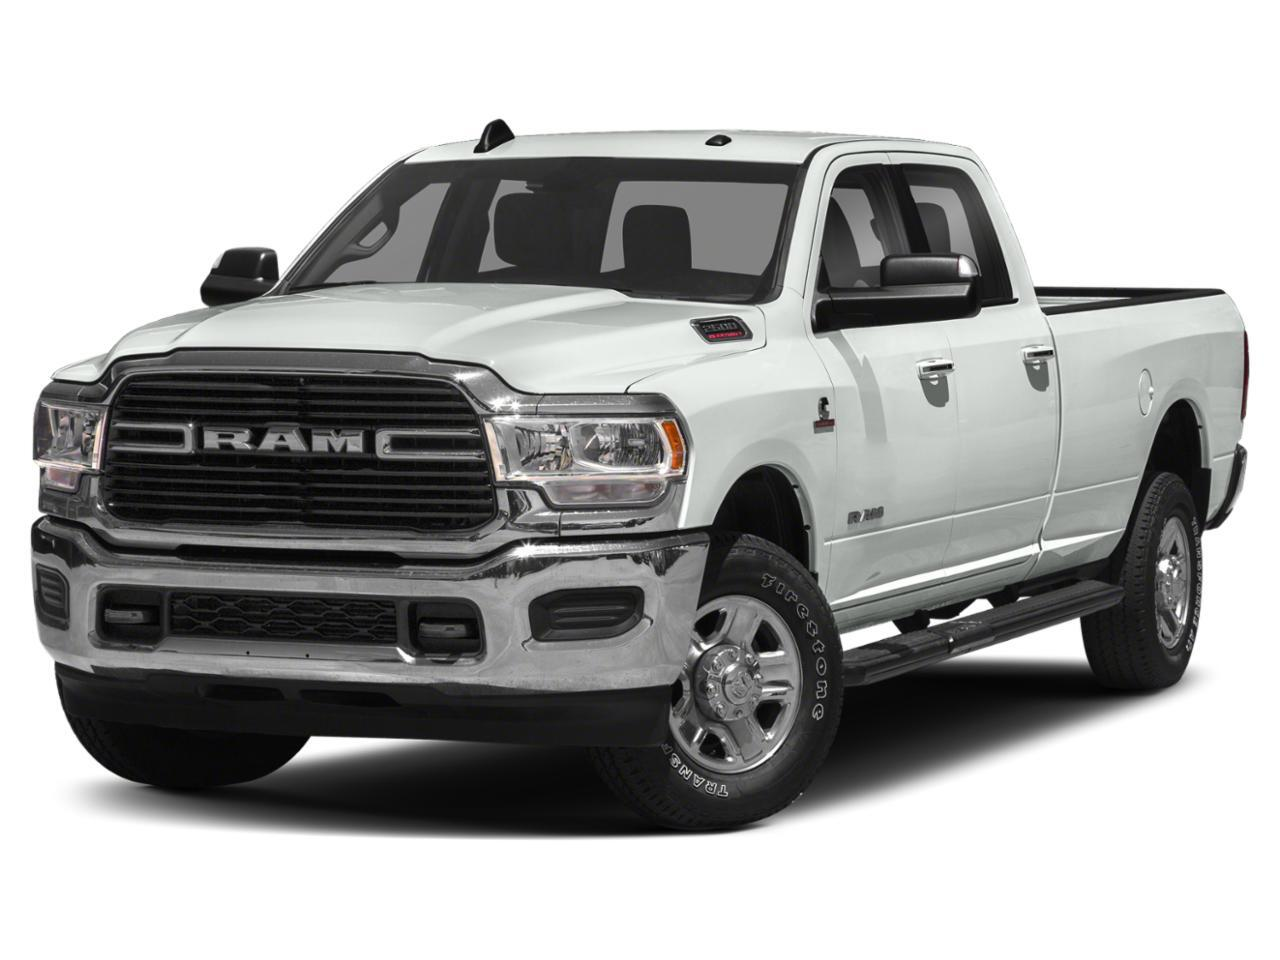 2021 Ram 2500 TRADESMAN REGULAR CAB 4X4 8' BOX Harper KS